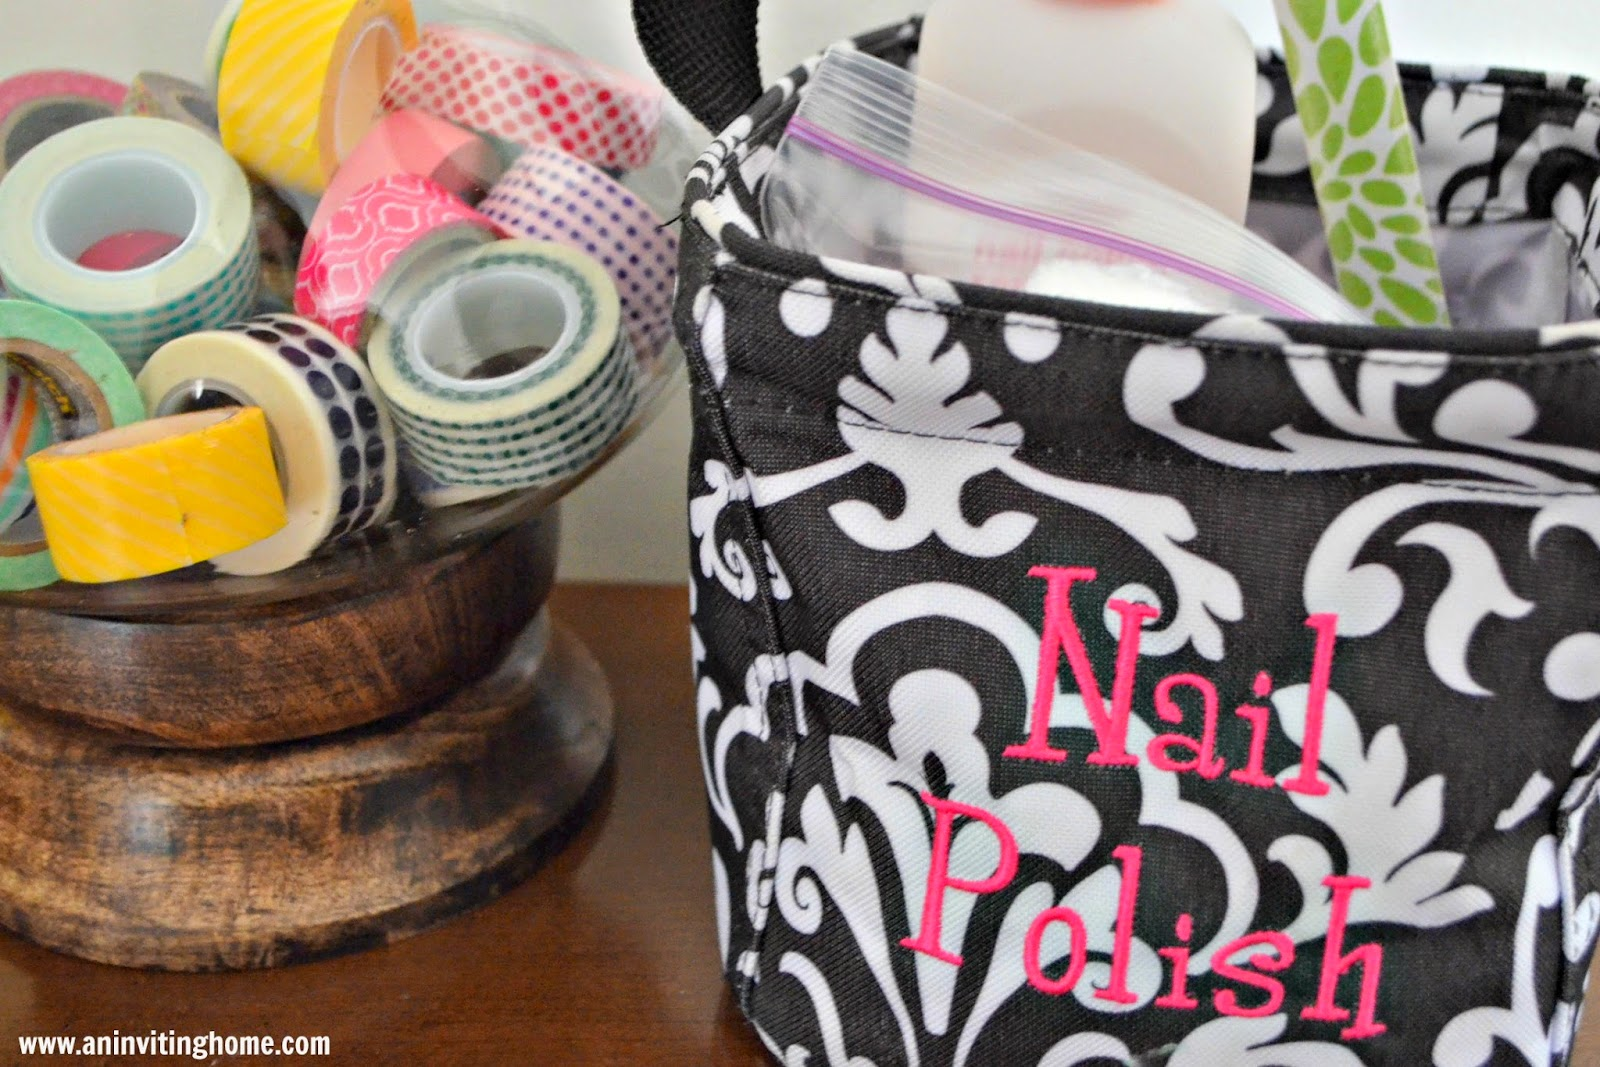 storing nail polish in a little tote